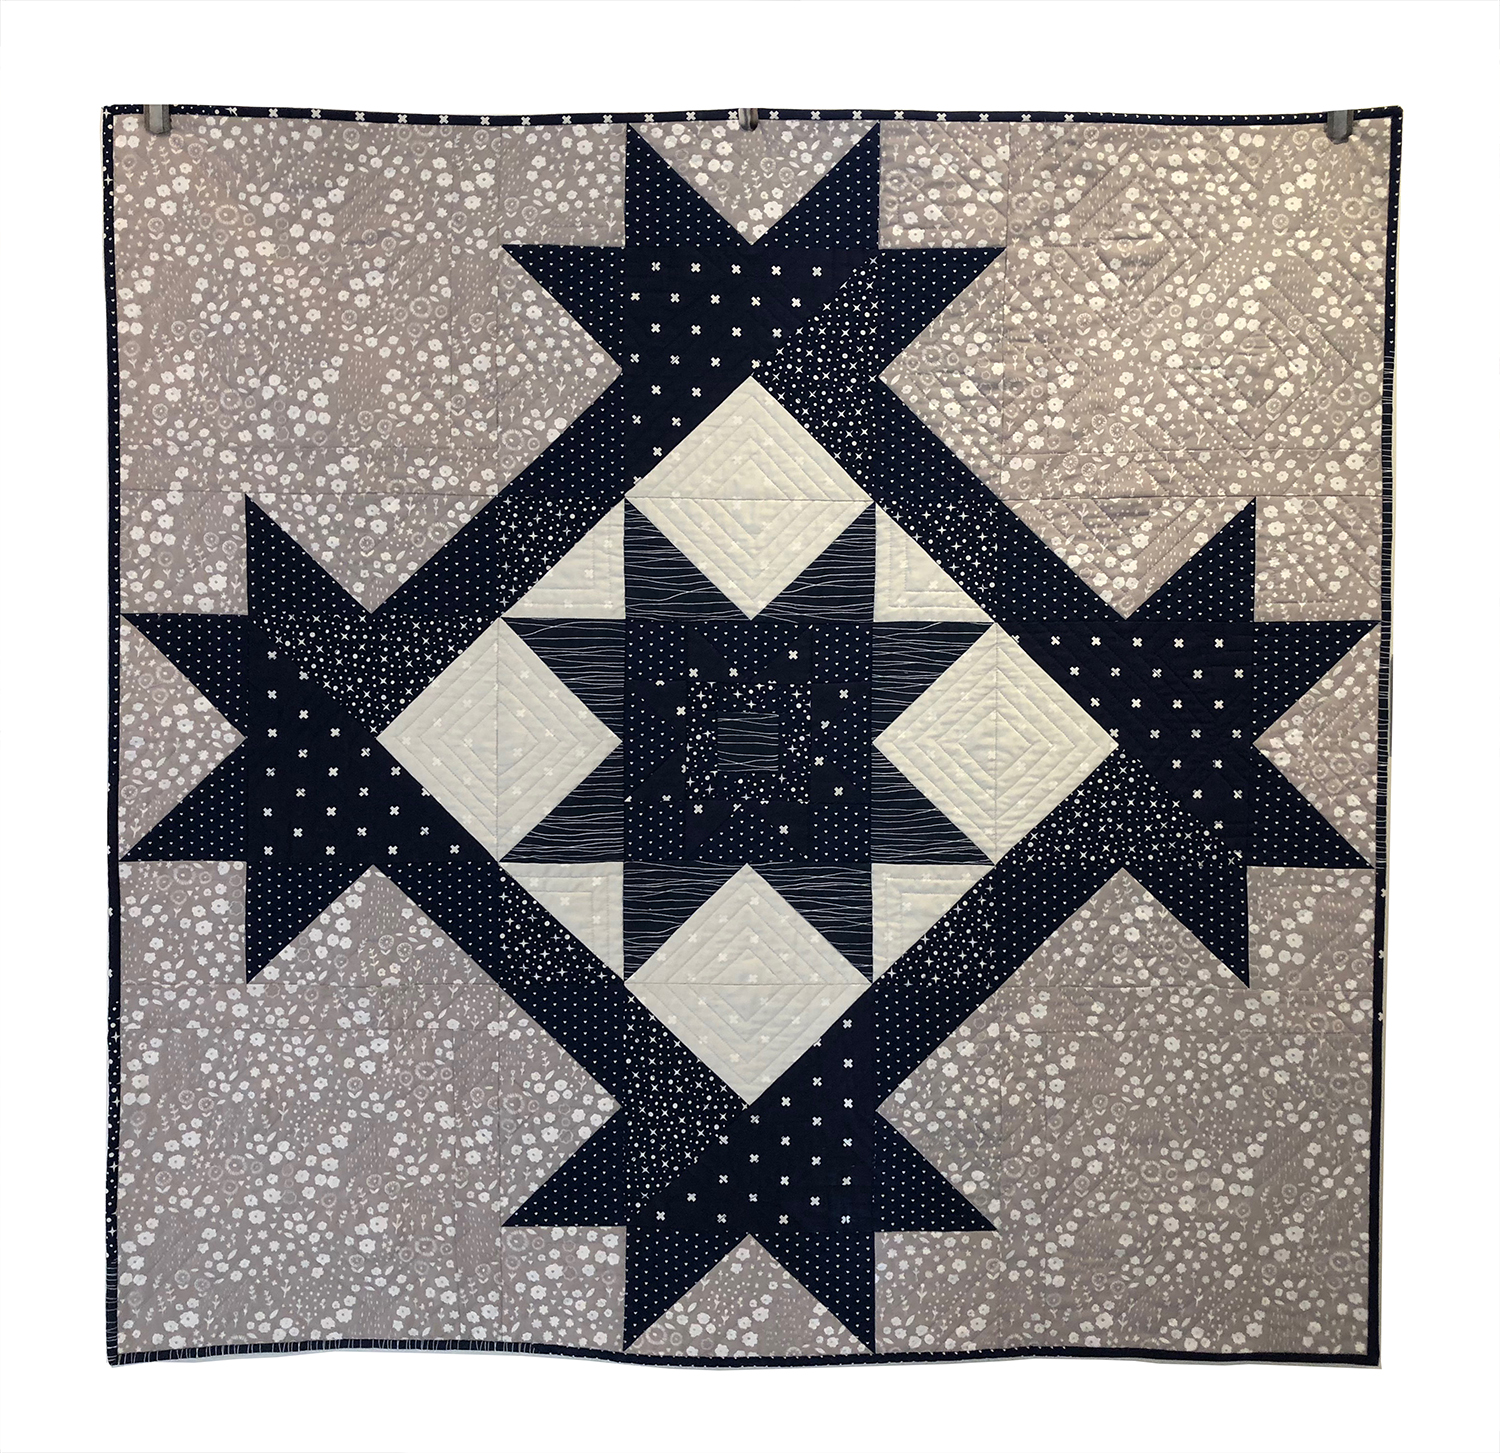 Double Star Quilt 2018